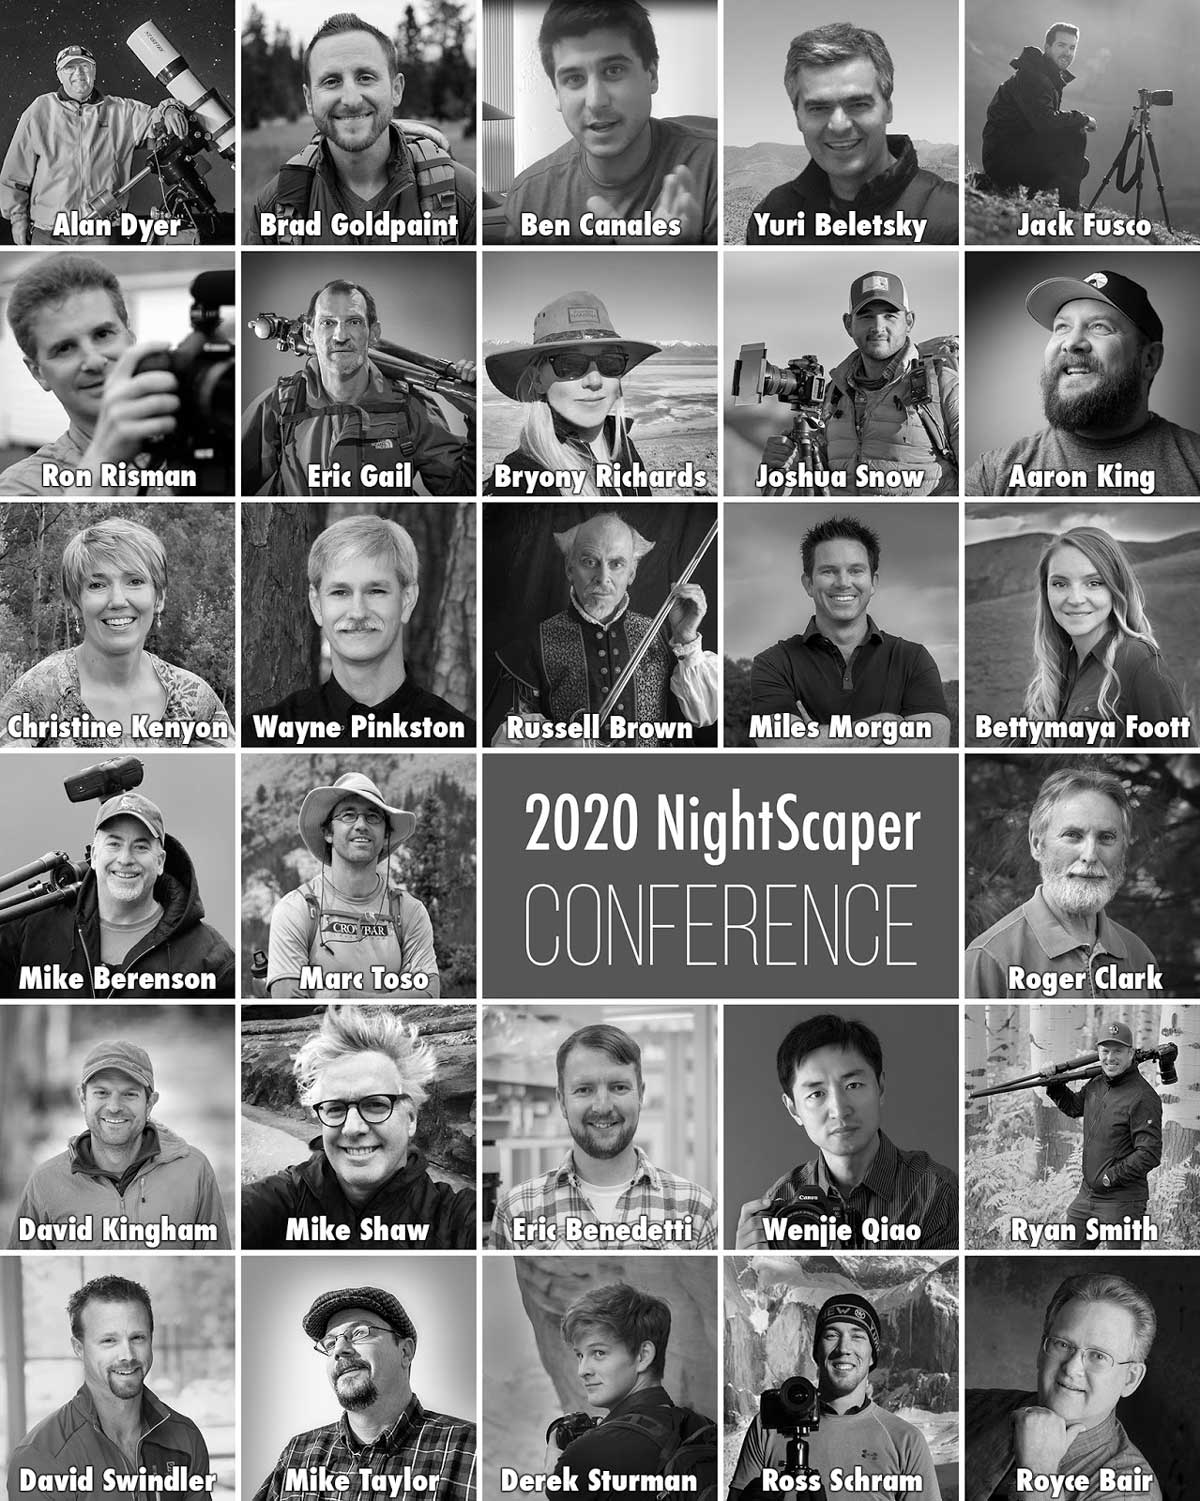 2020 NightScaper Conference Speaker List